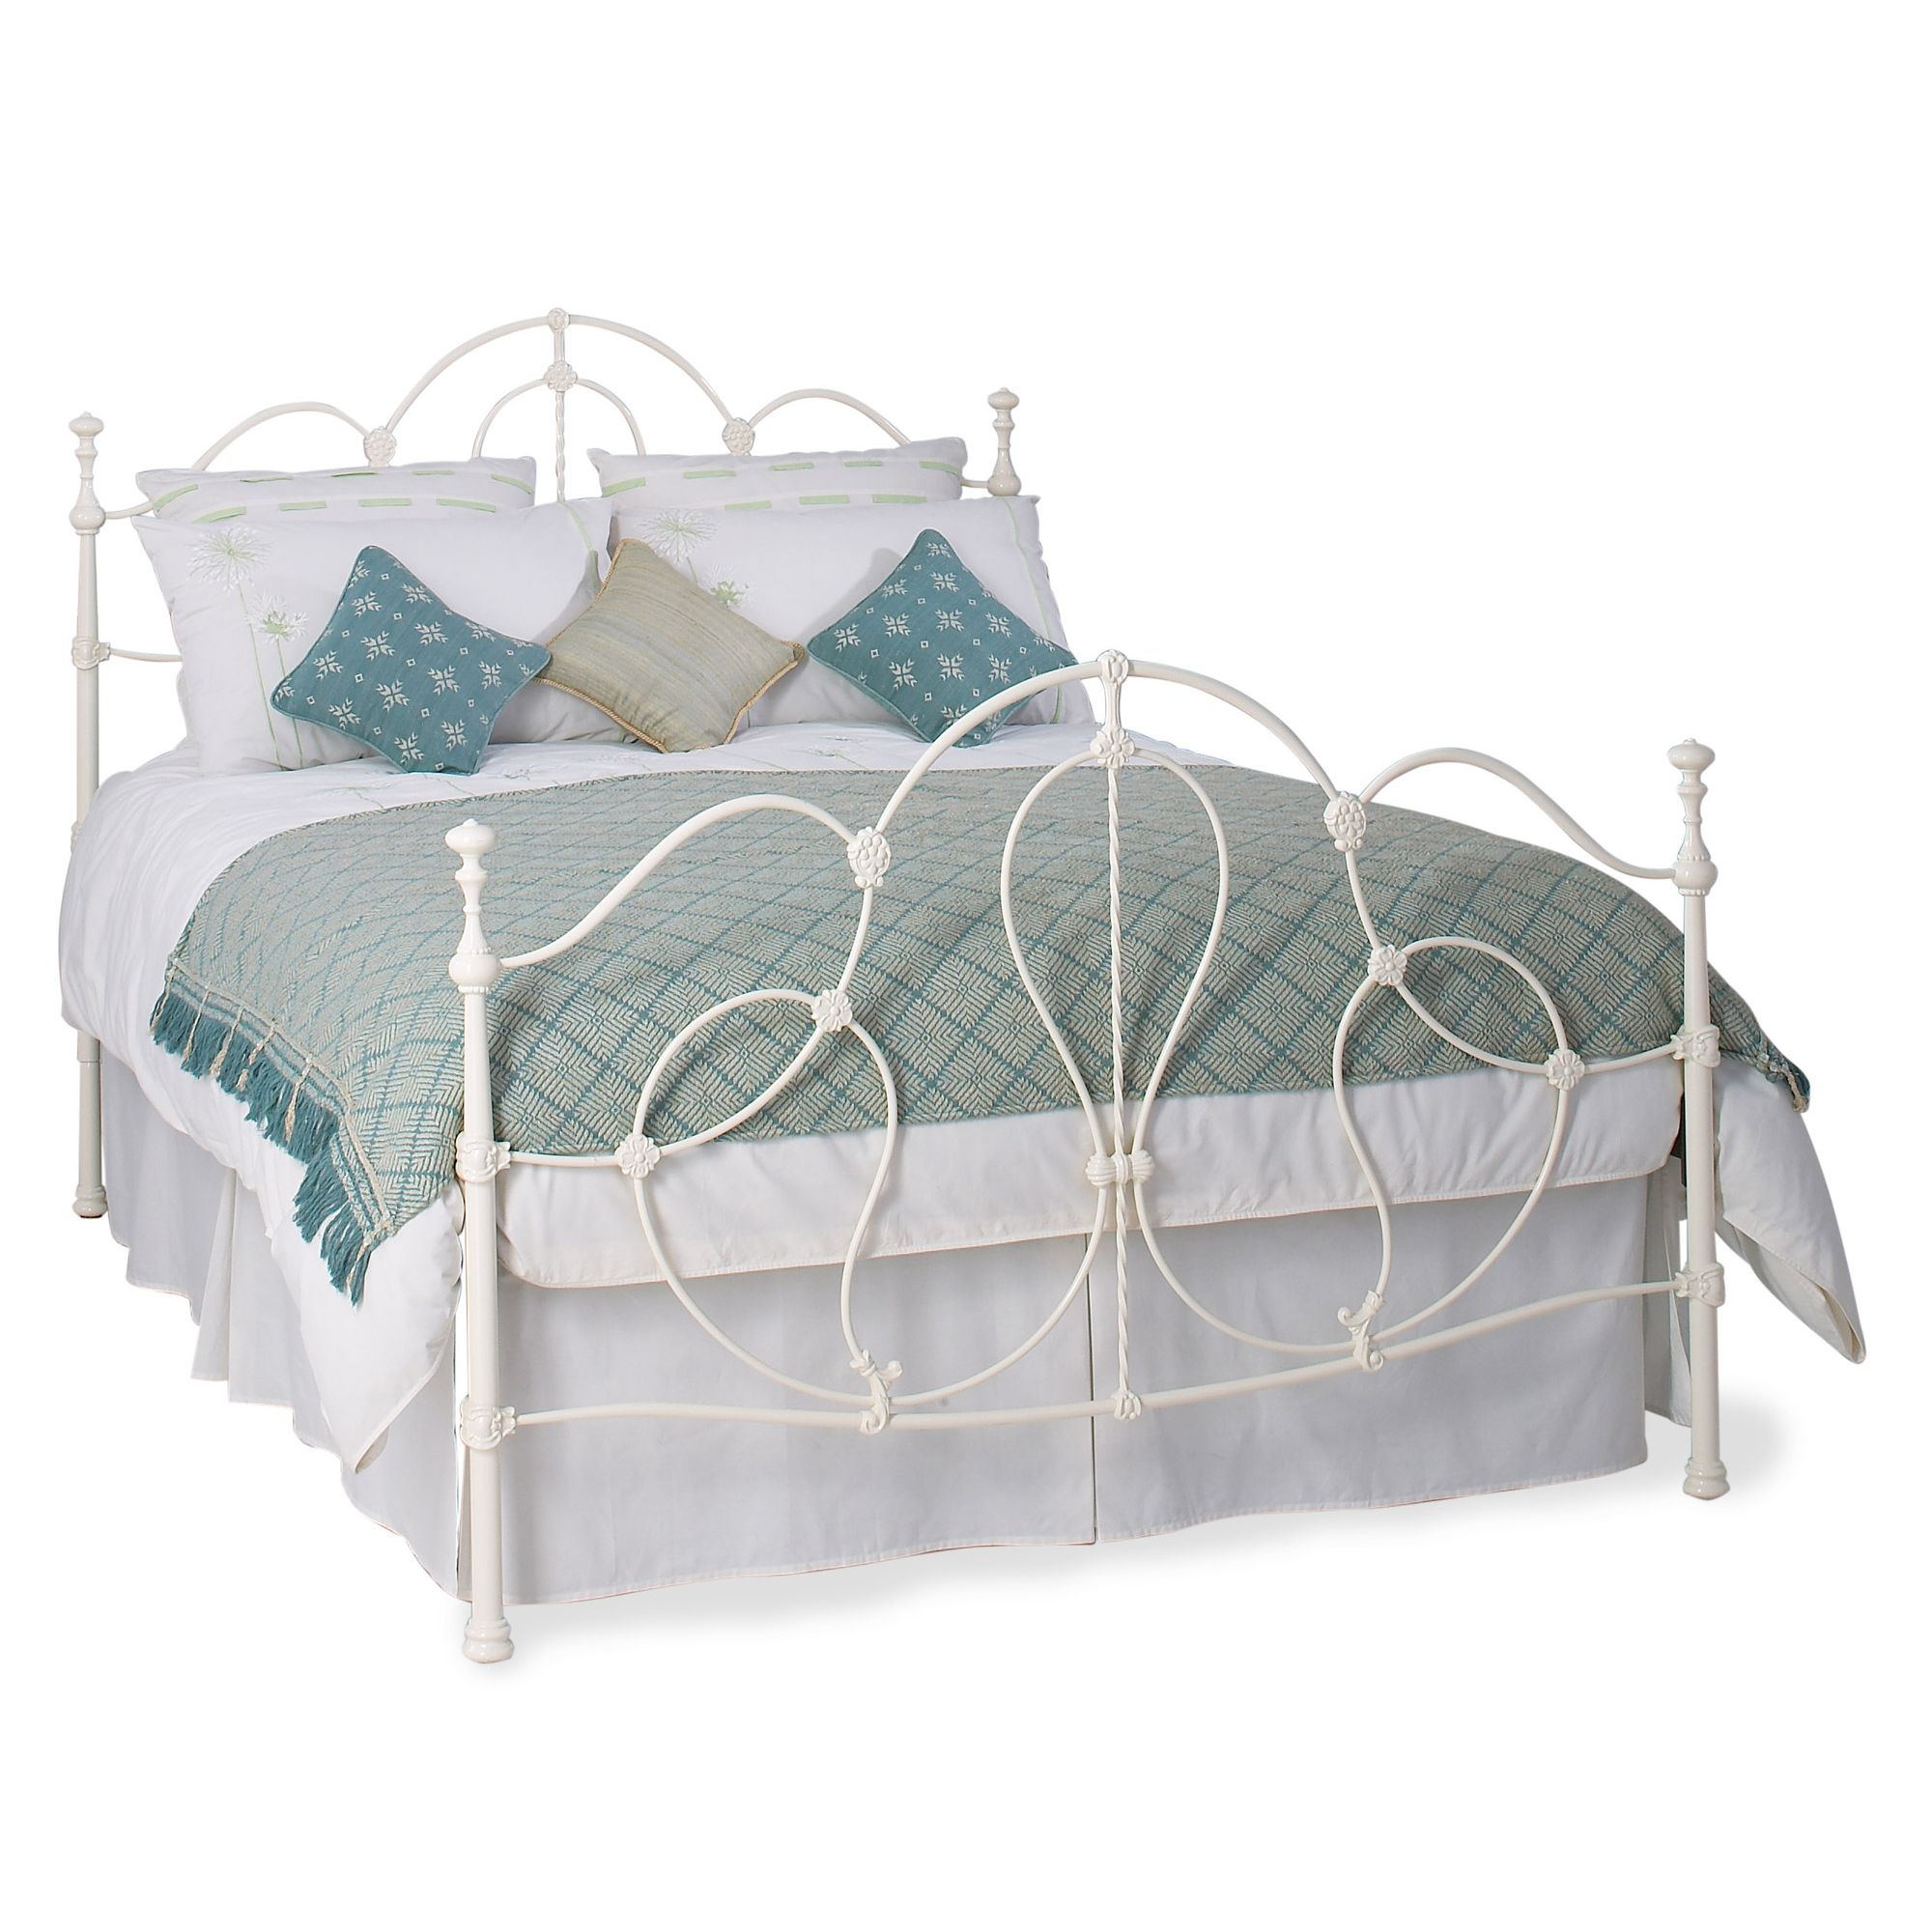 OBC Cara Bed Frame - Double at Tesco Direct